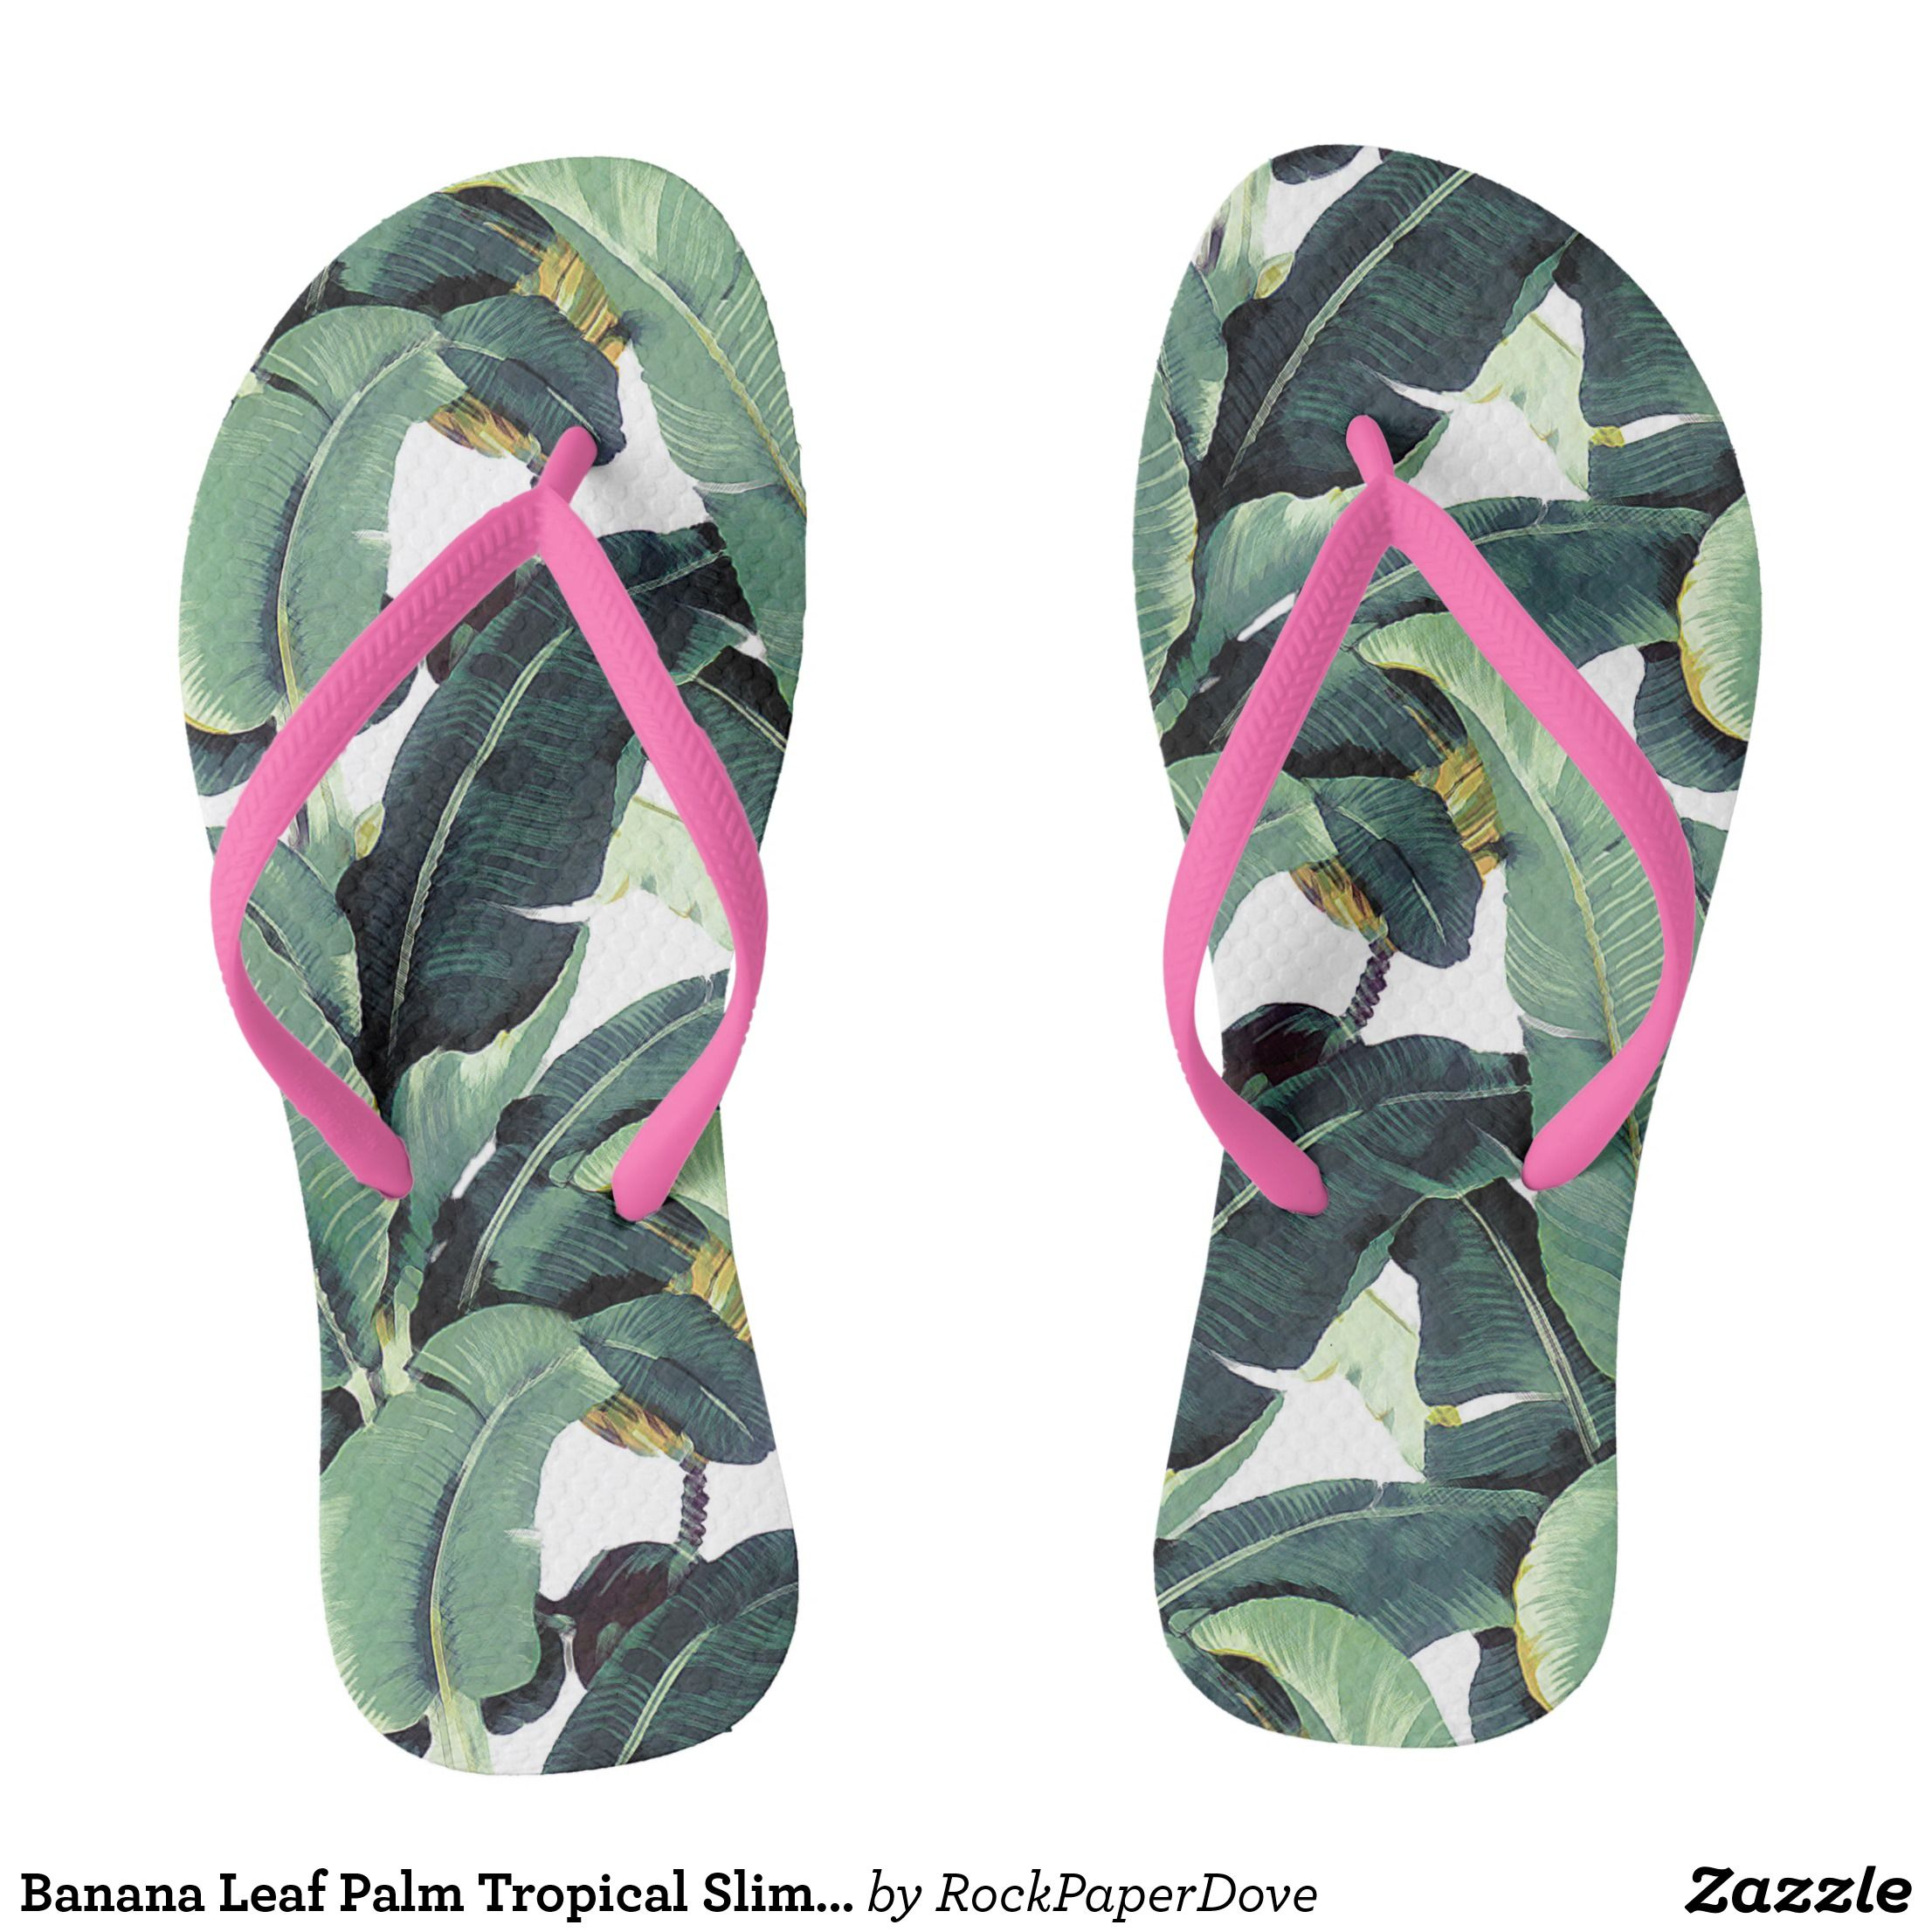 Military Camouflage: Urban II - Flip Flops Funny Thong Sandals Beach Sandals